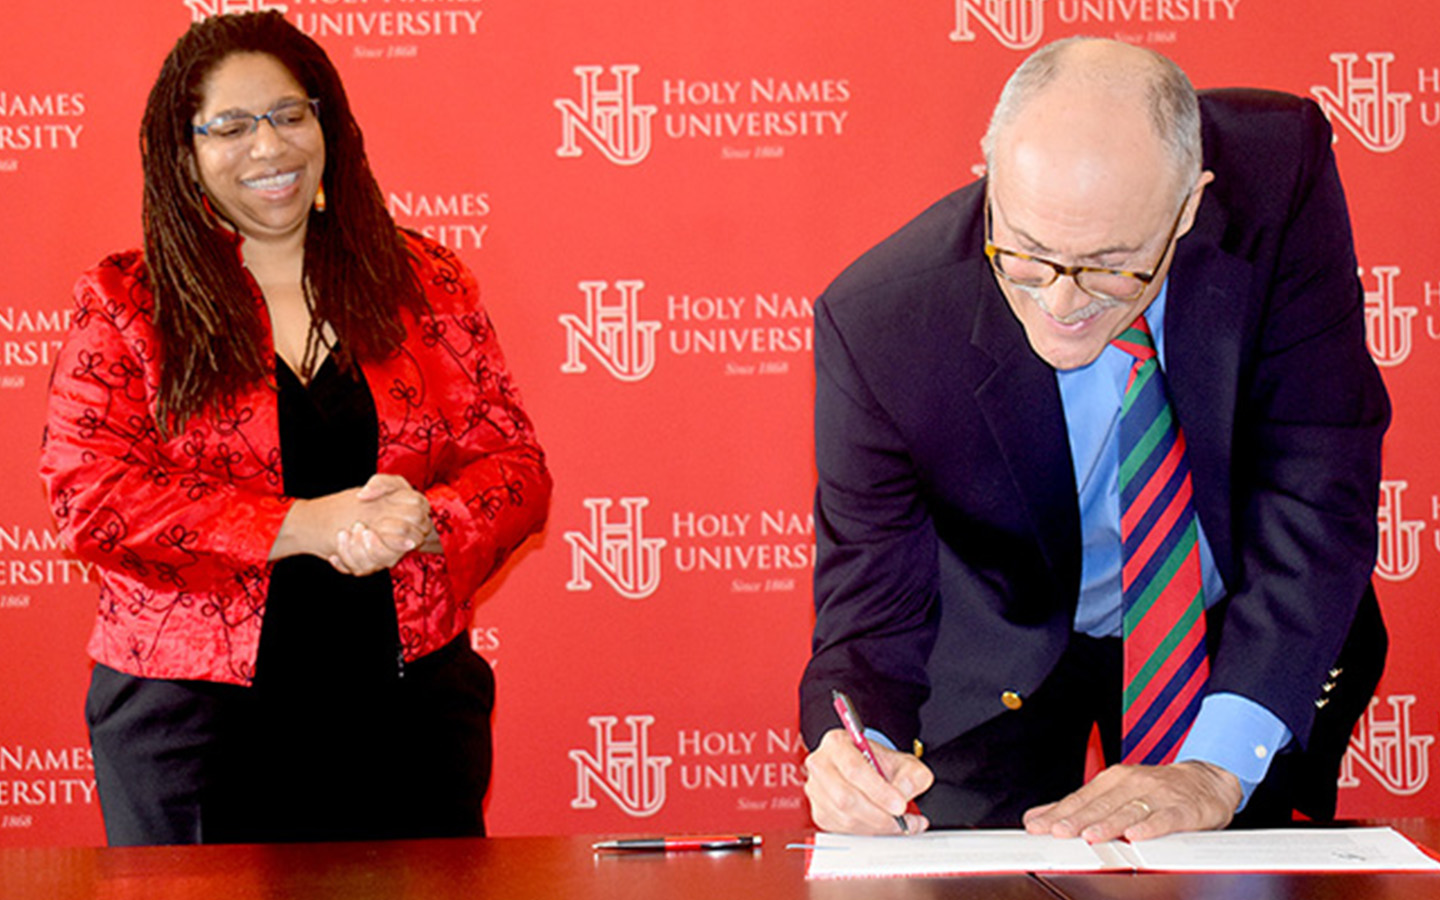 Sheila Smith McKoy and Robert Houghteling signing agreement between HNU and BATTI